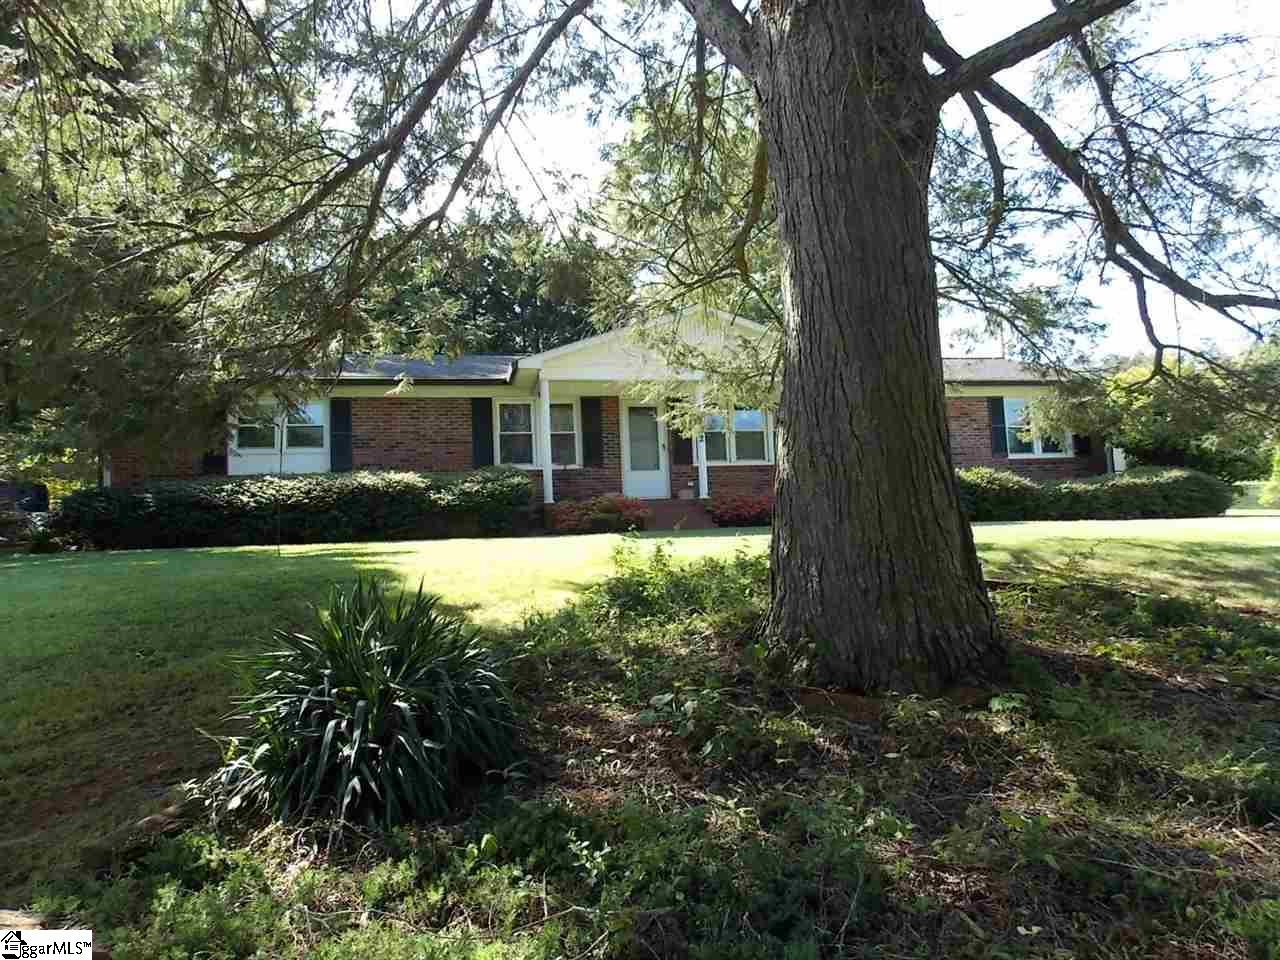 222 Holly Springs School Pickens, SC 29671